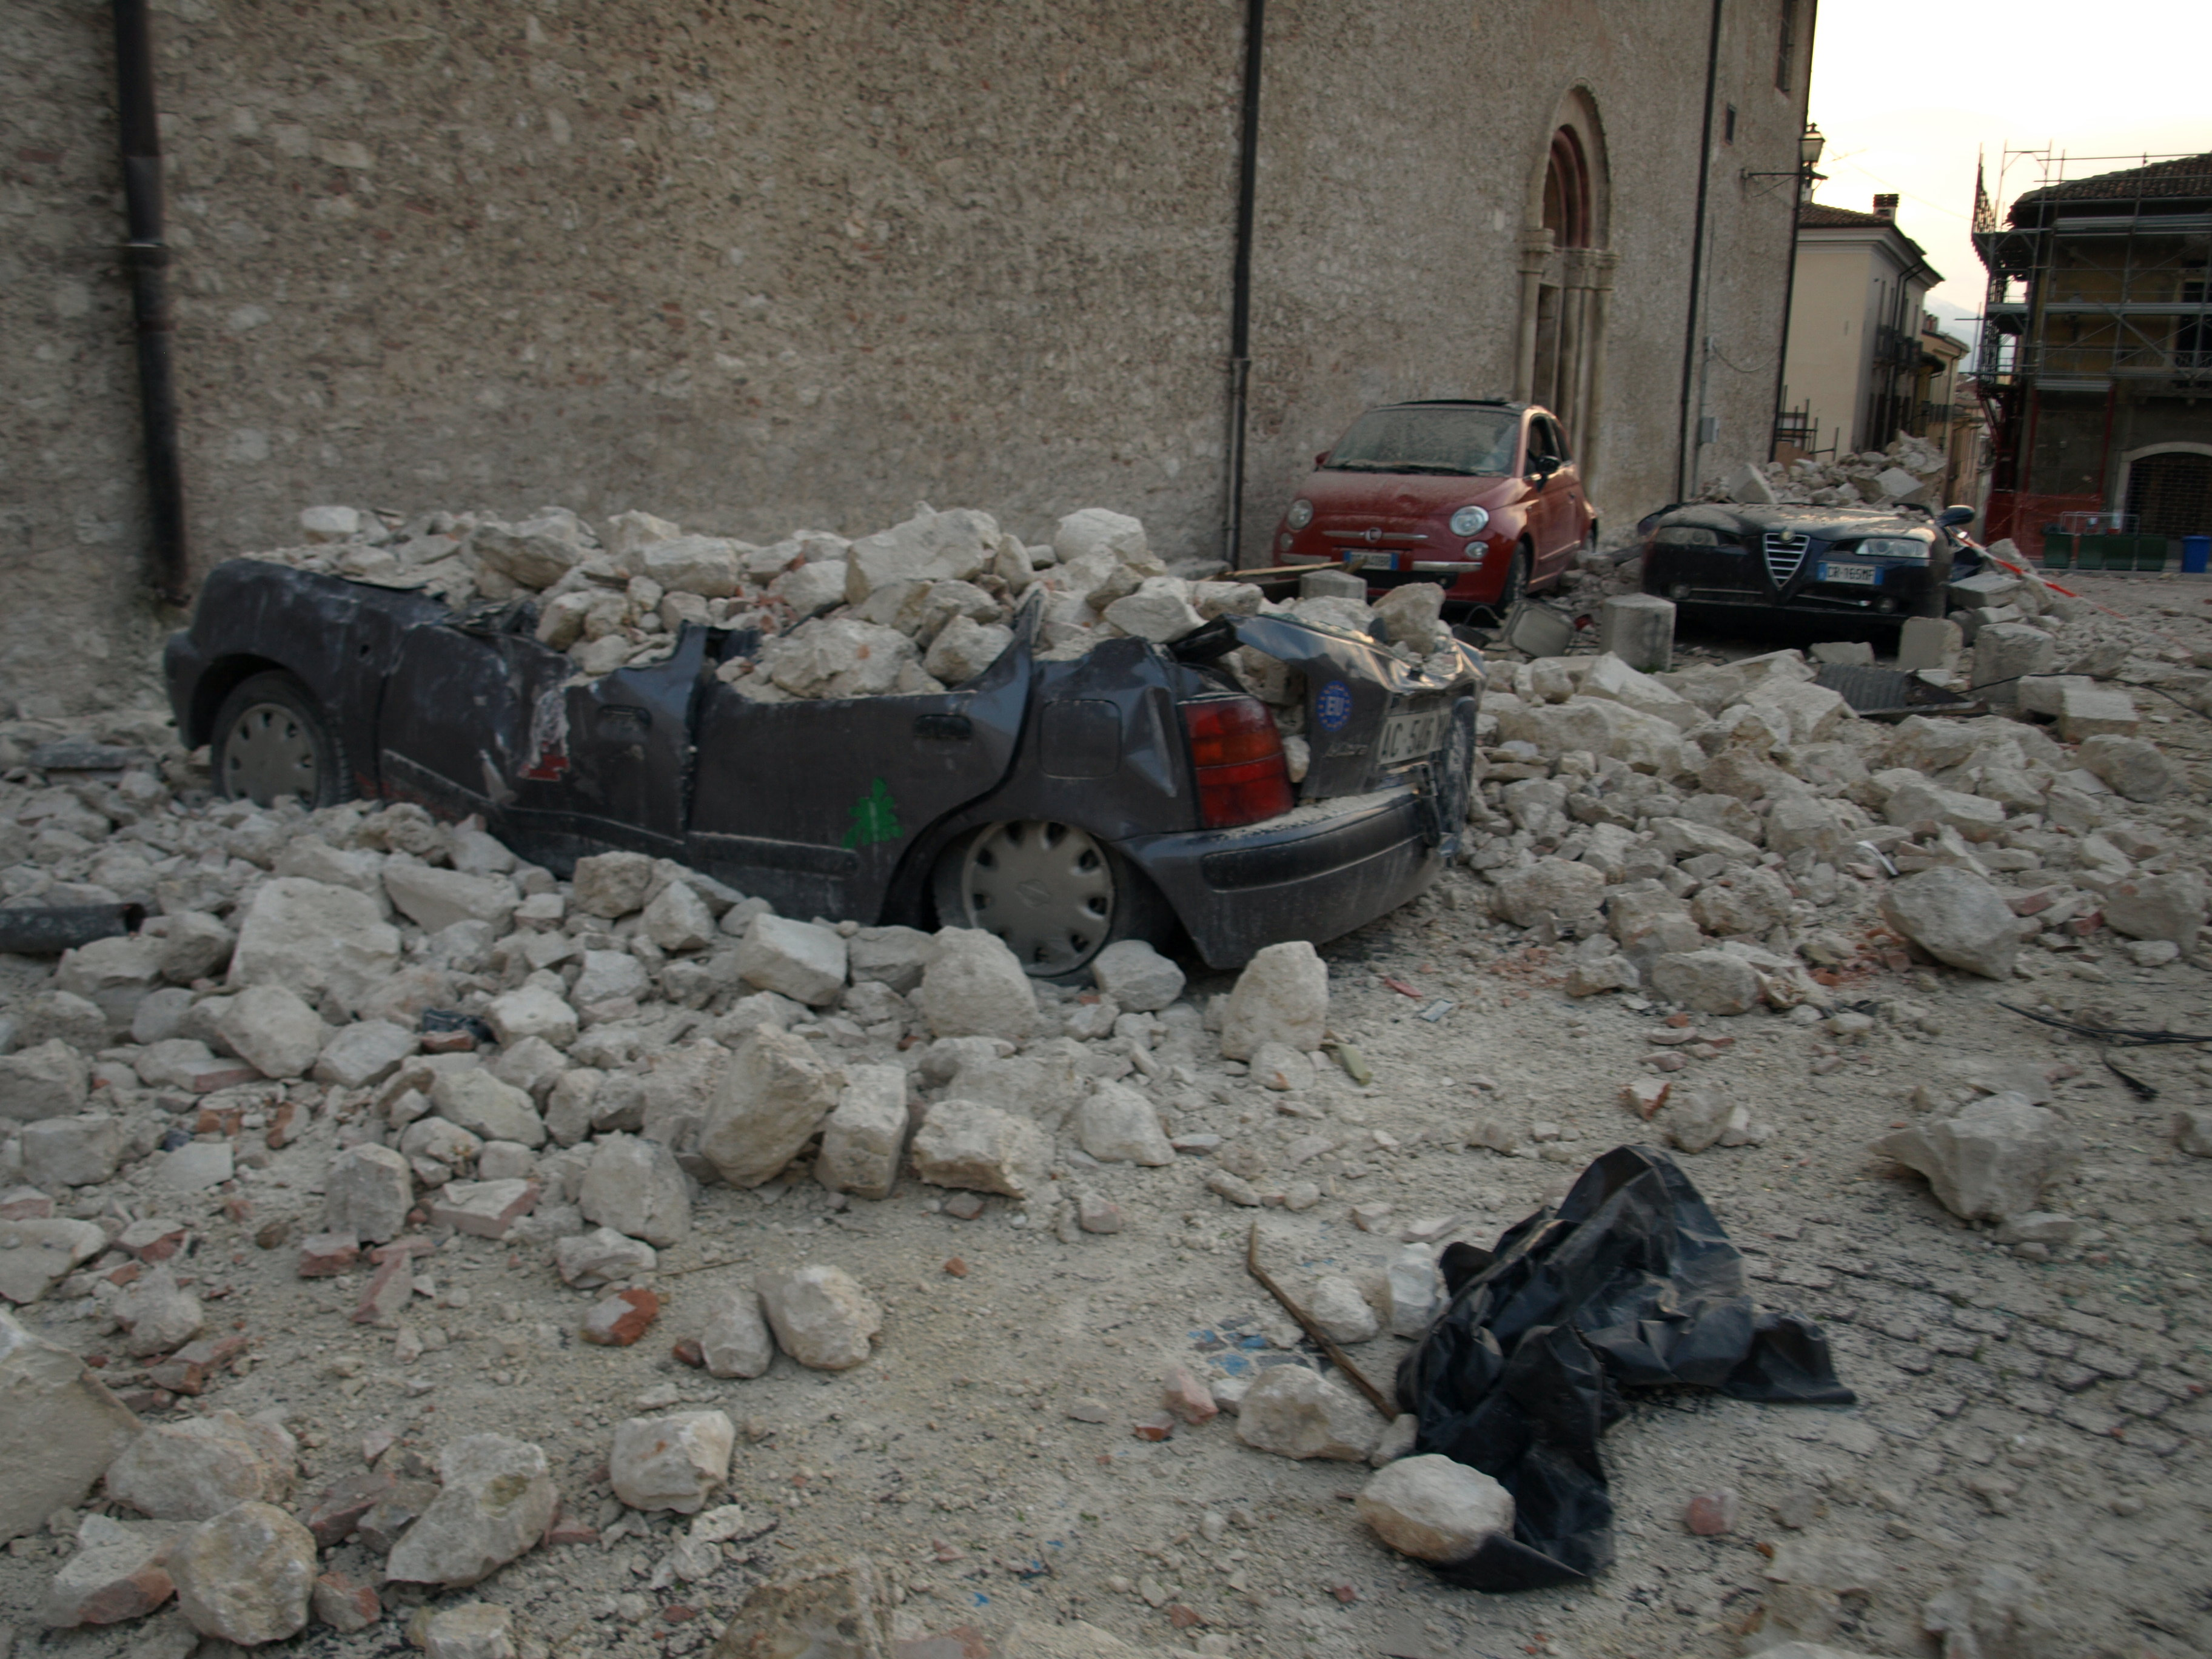 The historic town of L'Aquila in central Italy was devastated by the 2009 earthquake. Credit: Caritas/Michelle Hough